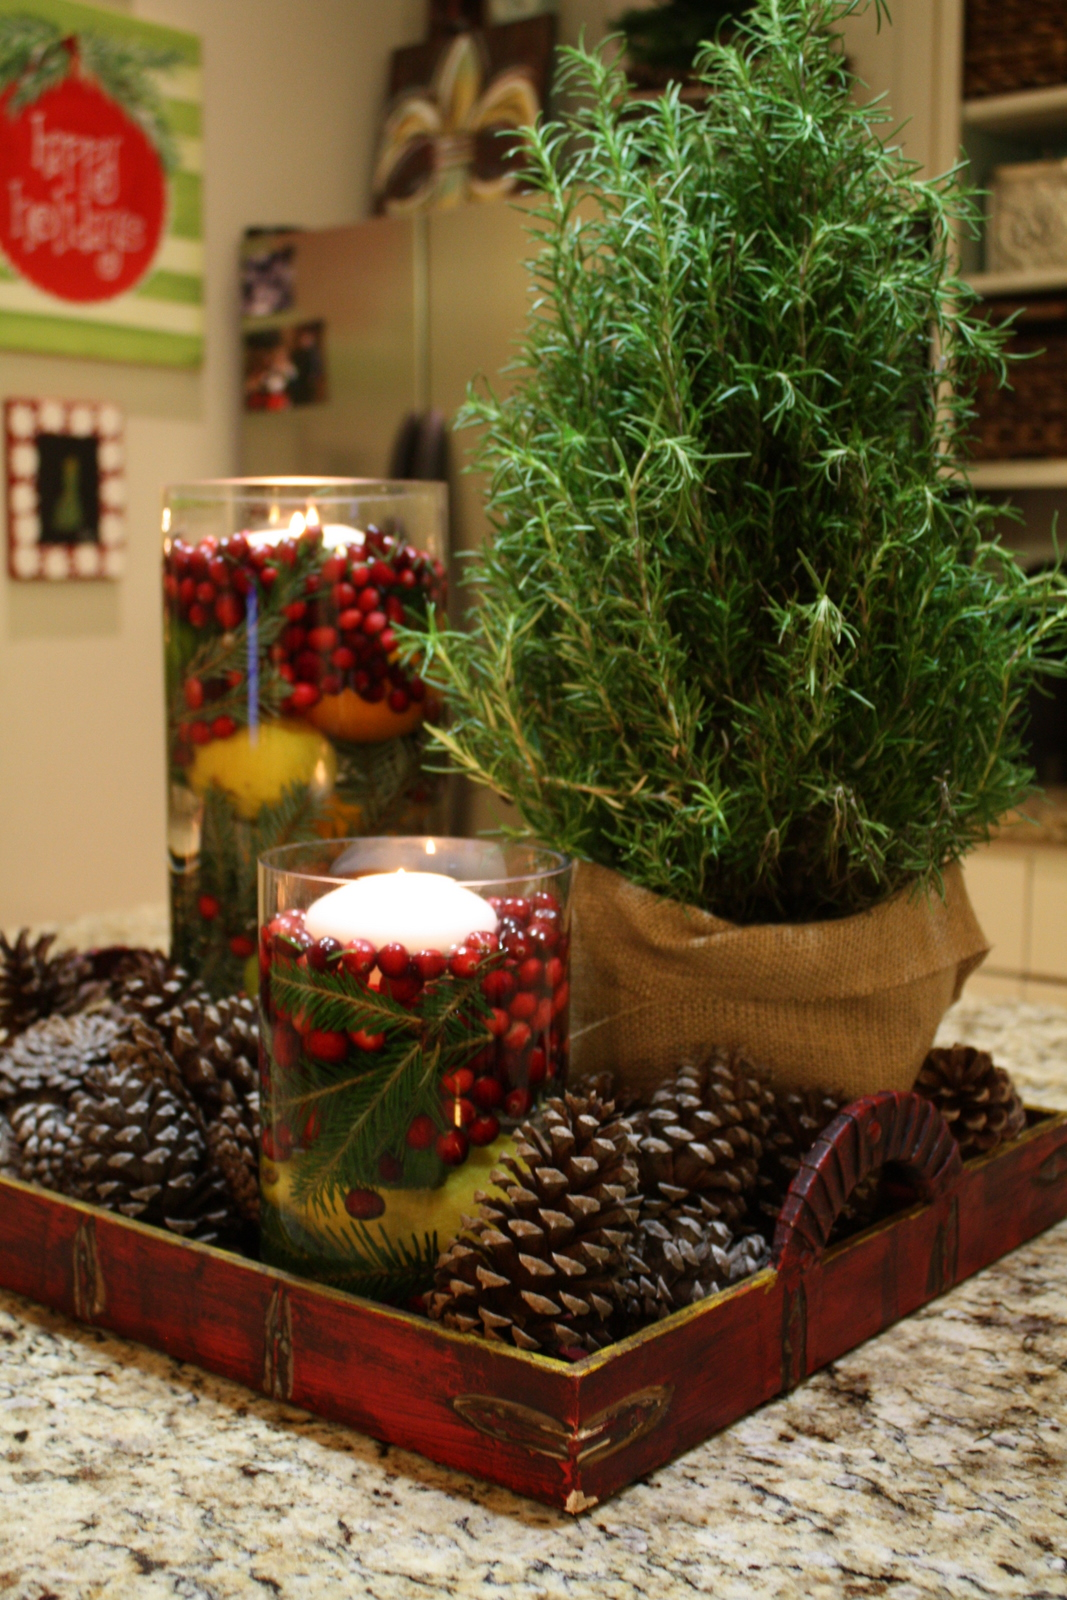 Decorative Kitchen Canisters Sets Our Southern Nest Easy Holiday Centerpiece